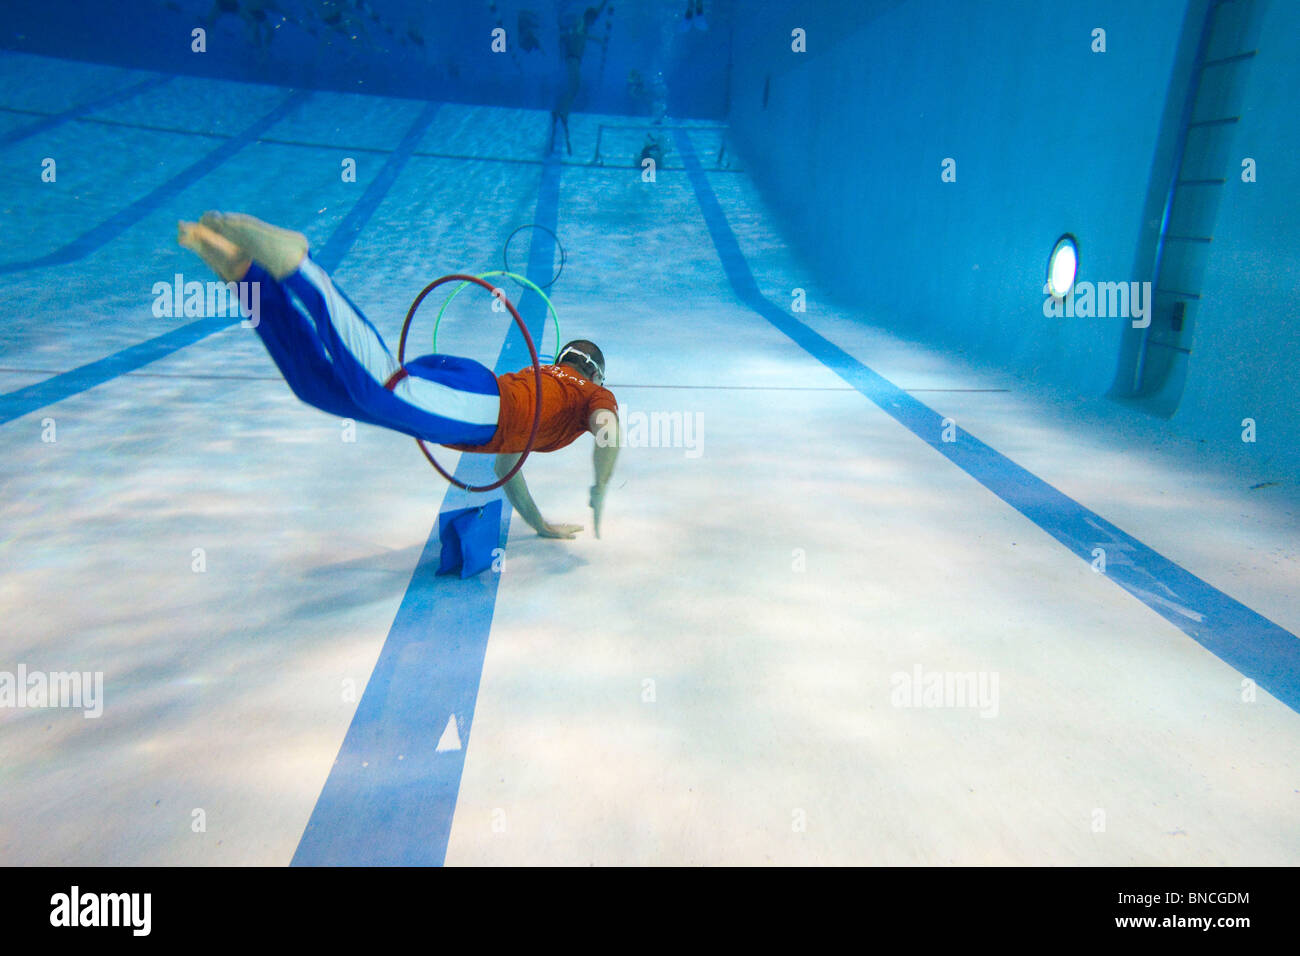 Training of the 'SNSM' lifeguards in a swimming pool : exercise with hoops - Stock Image